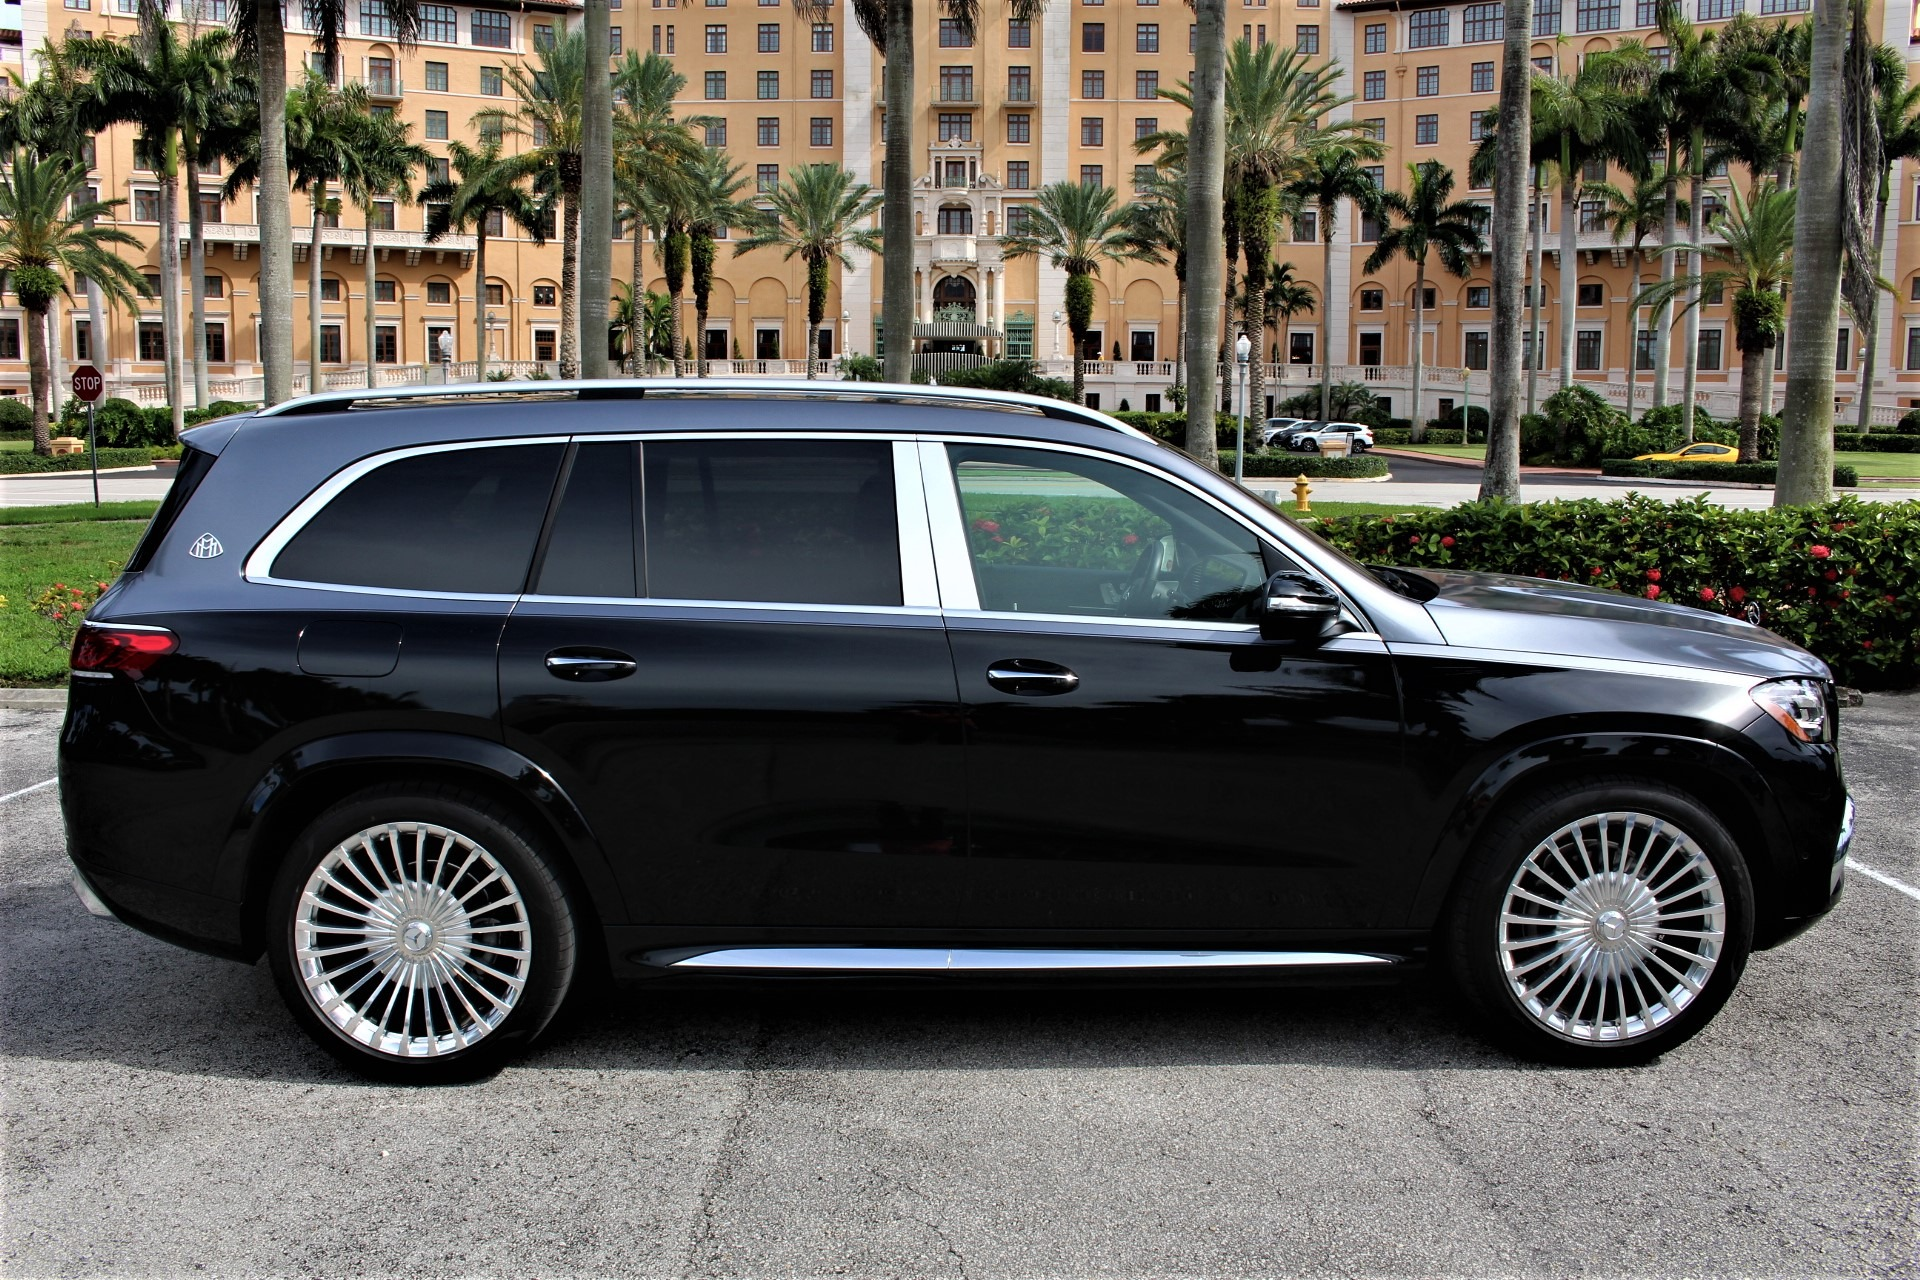 Used 2021 Mercedes-Benz GLS Mercedes-Maybach GLS 600 4MATIC for sale $234,850 at The Gables Sports Cars in Miami FL 33146 2